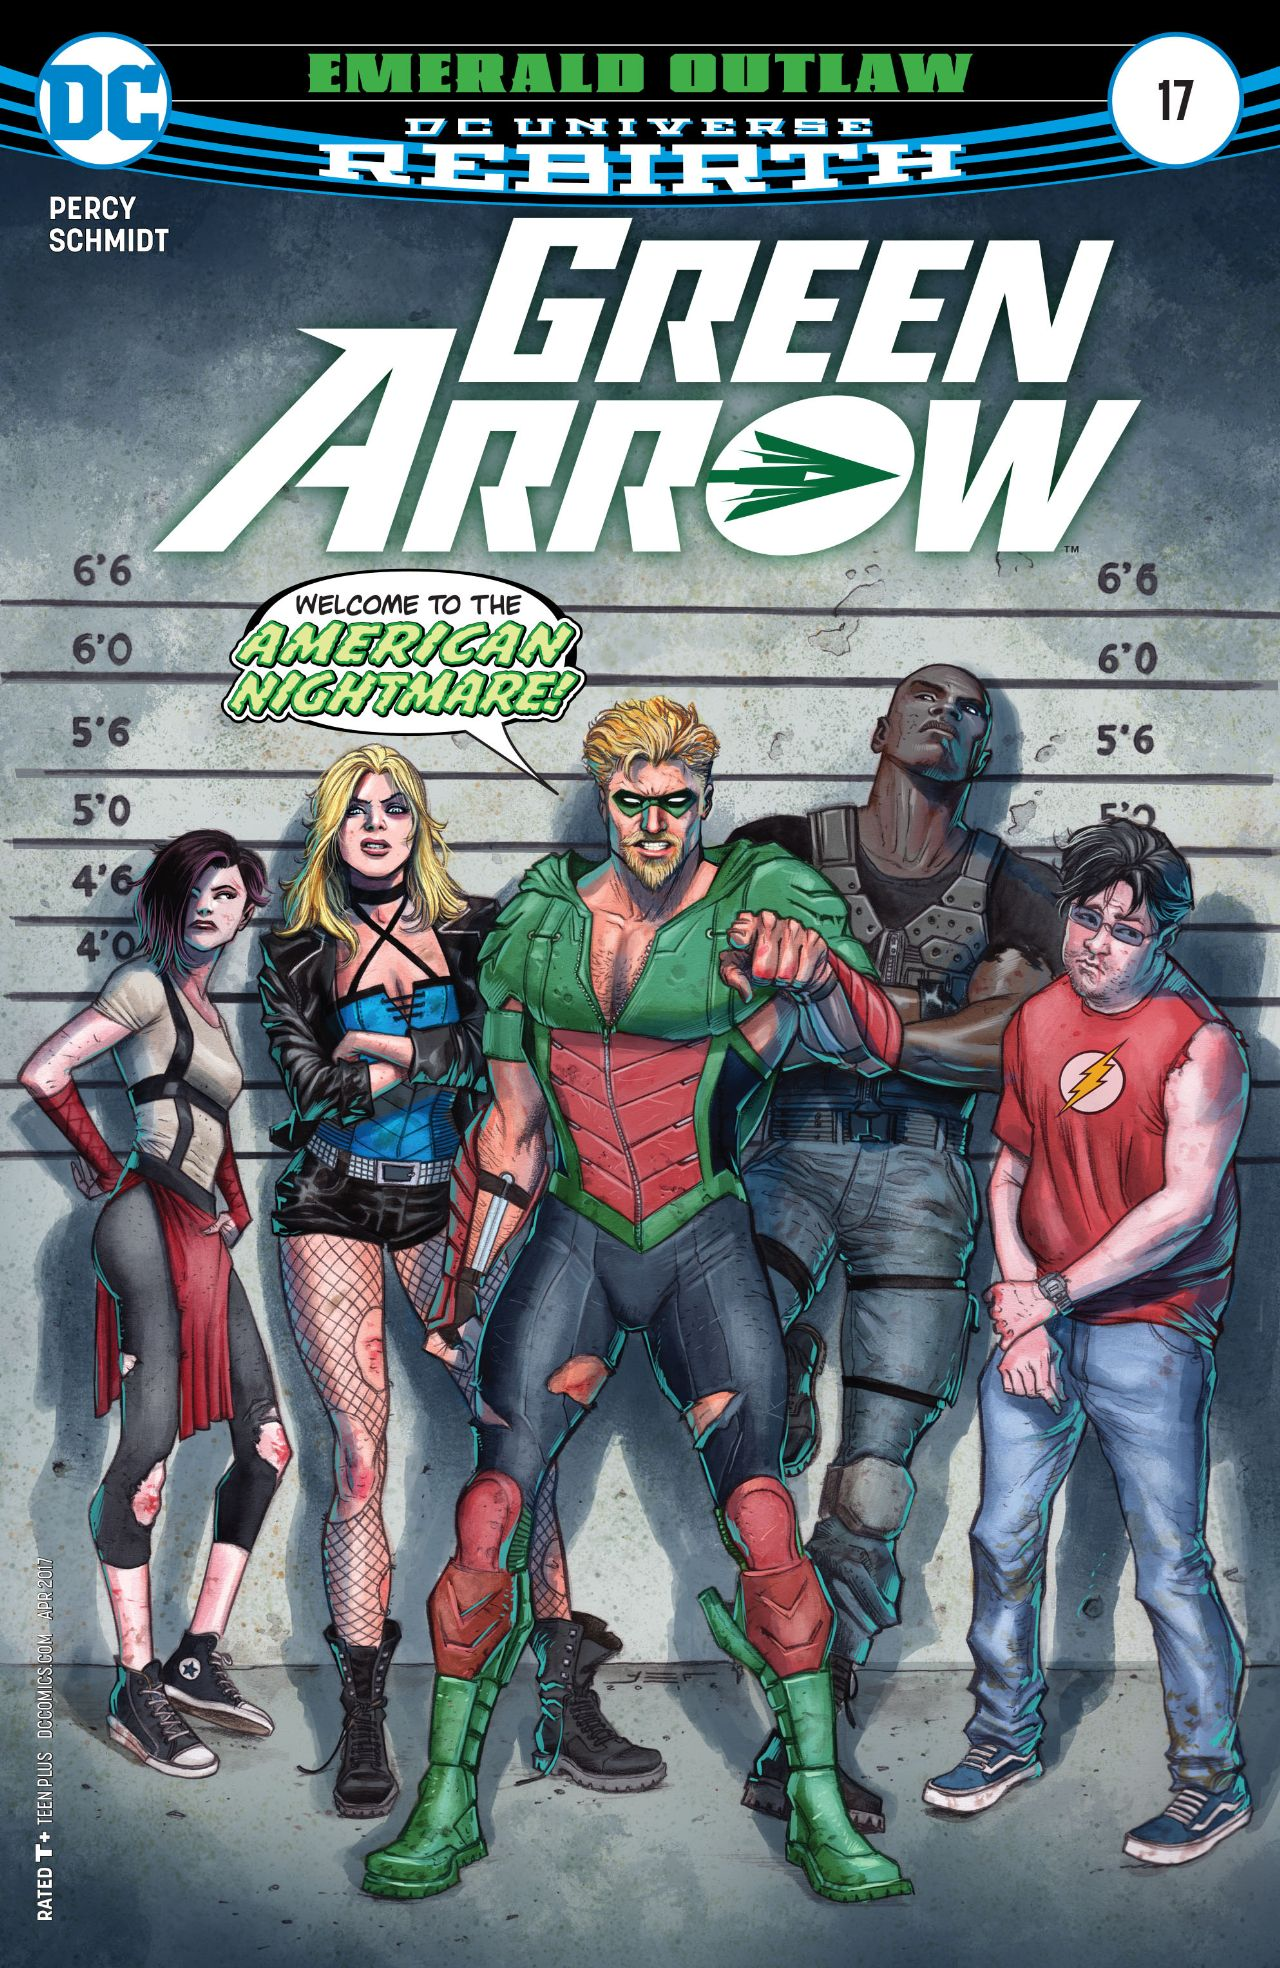 Green Arrow Vol 6 17